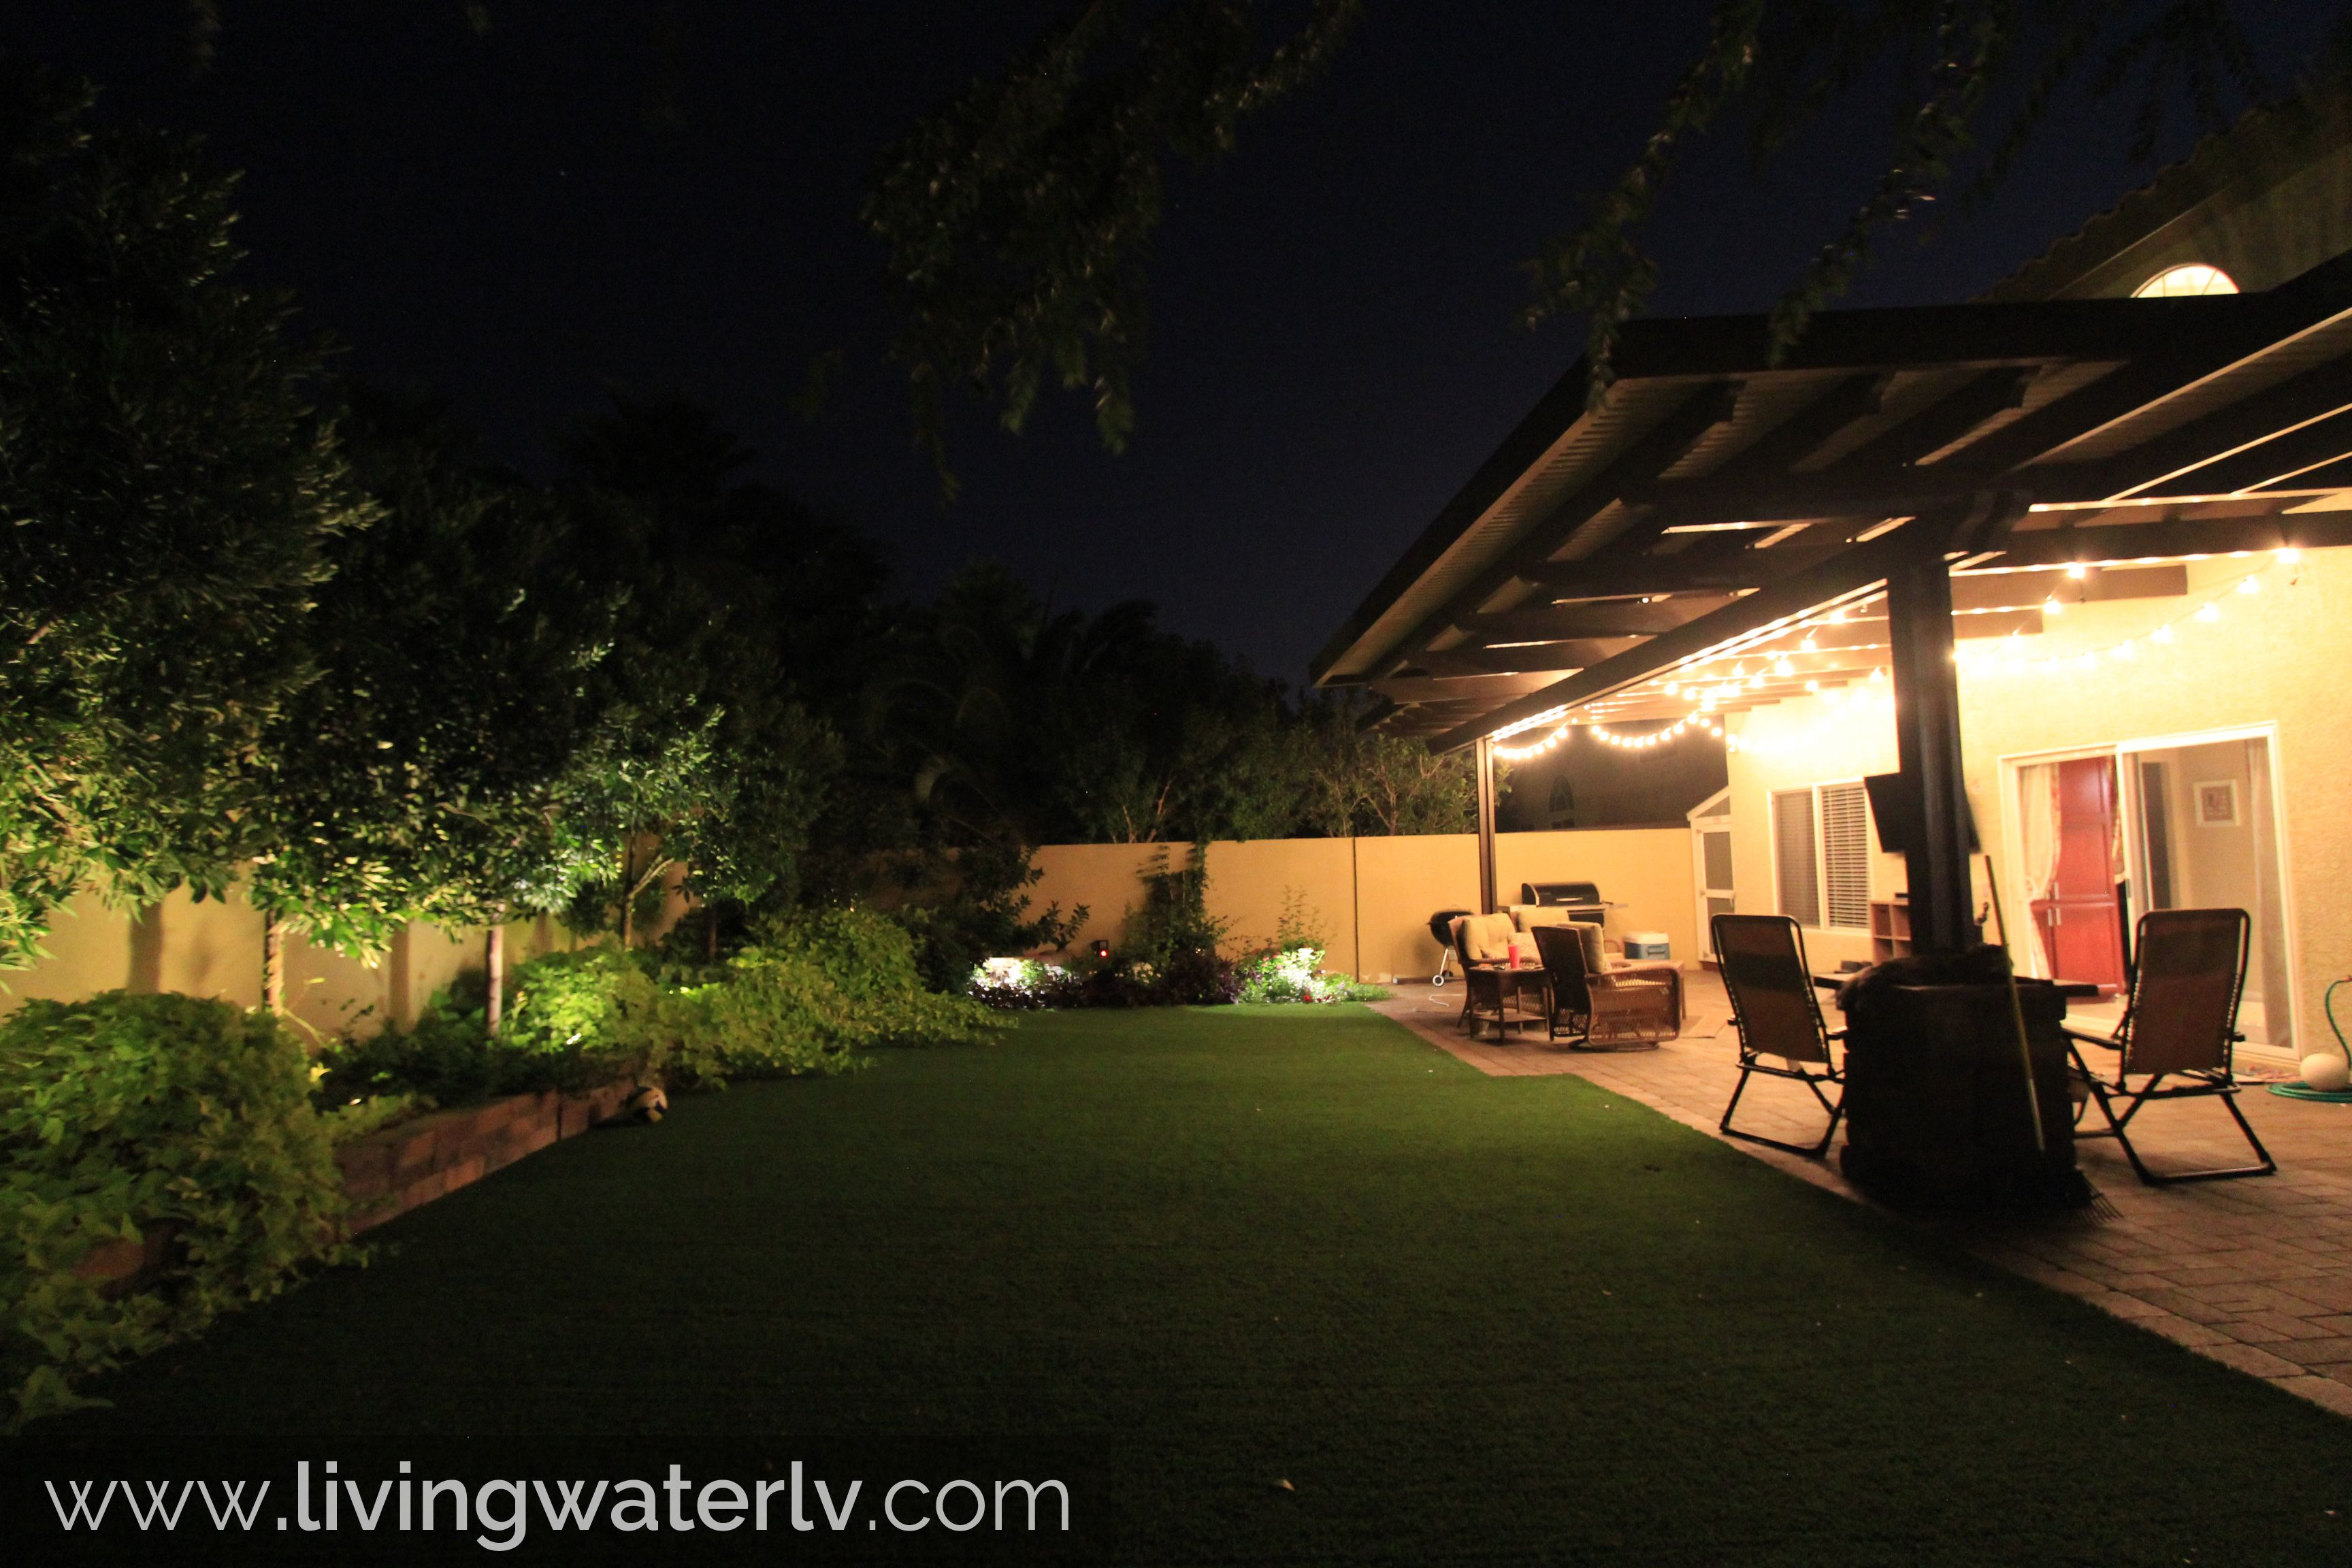 Correct landscape lighting will brighten up your back yard giving you usable space all night long. The landscape lighting comes in so many different looks and styles that there is definitely something that fits every design taste.